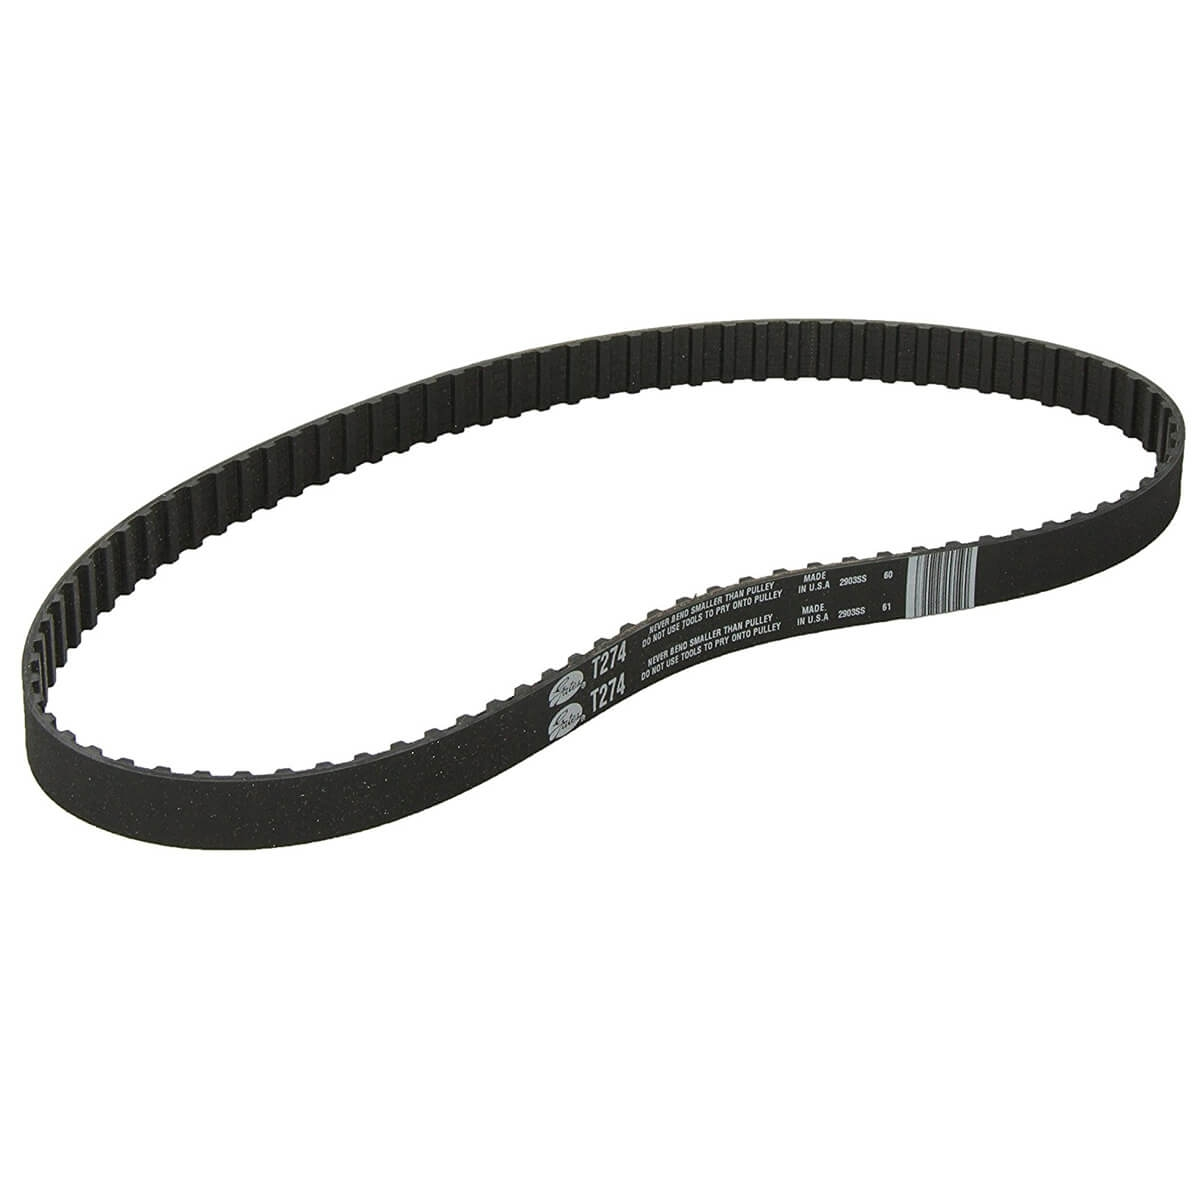 CITROEN C4 SPACETOURER Timing Belt